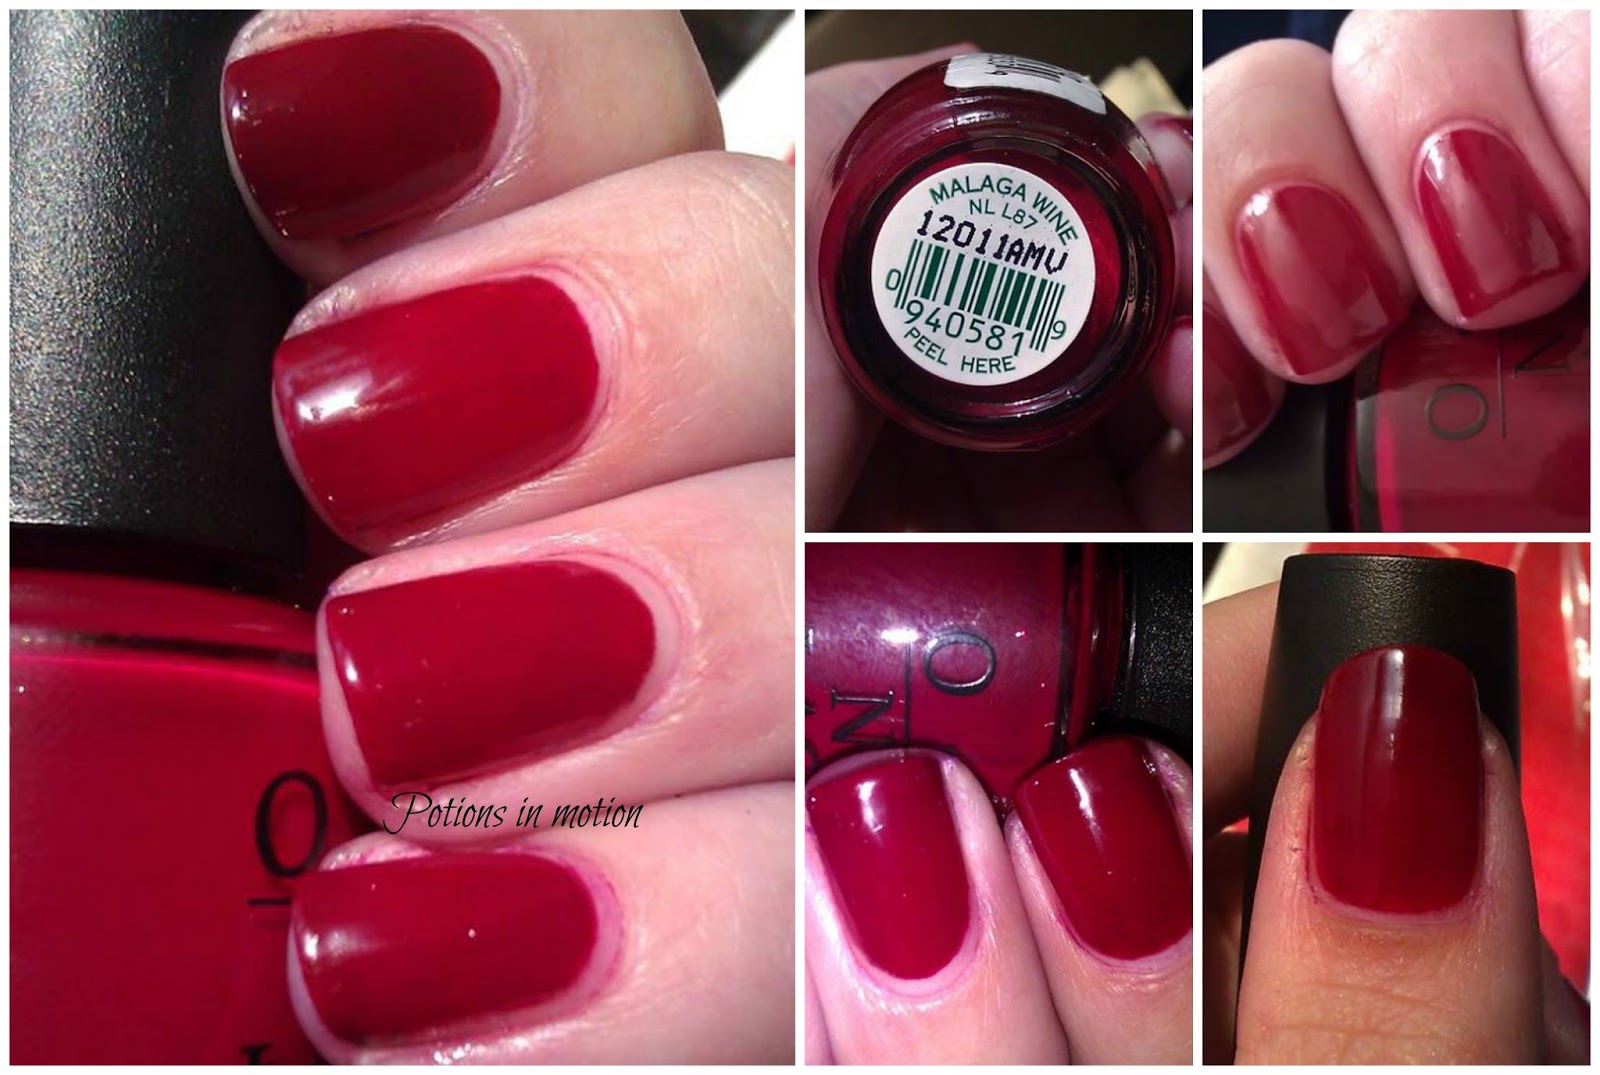 Potions in motion nail blog: Trying something out of my comfort zone ...